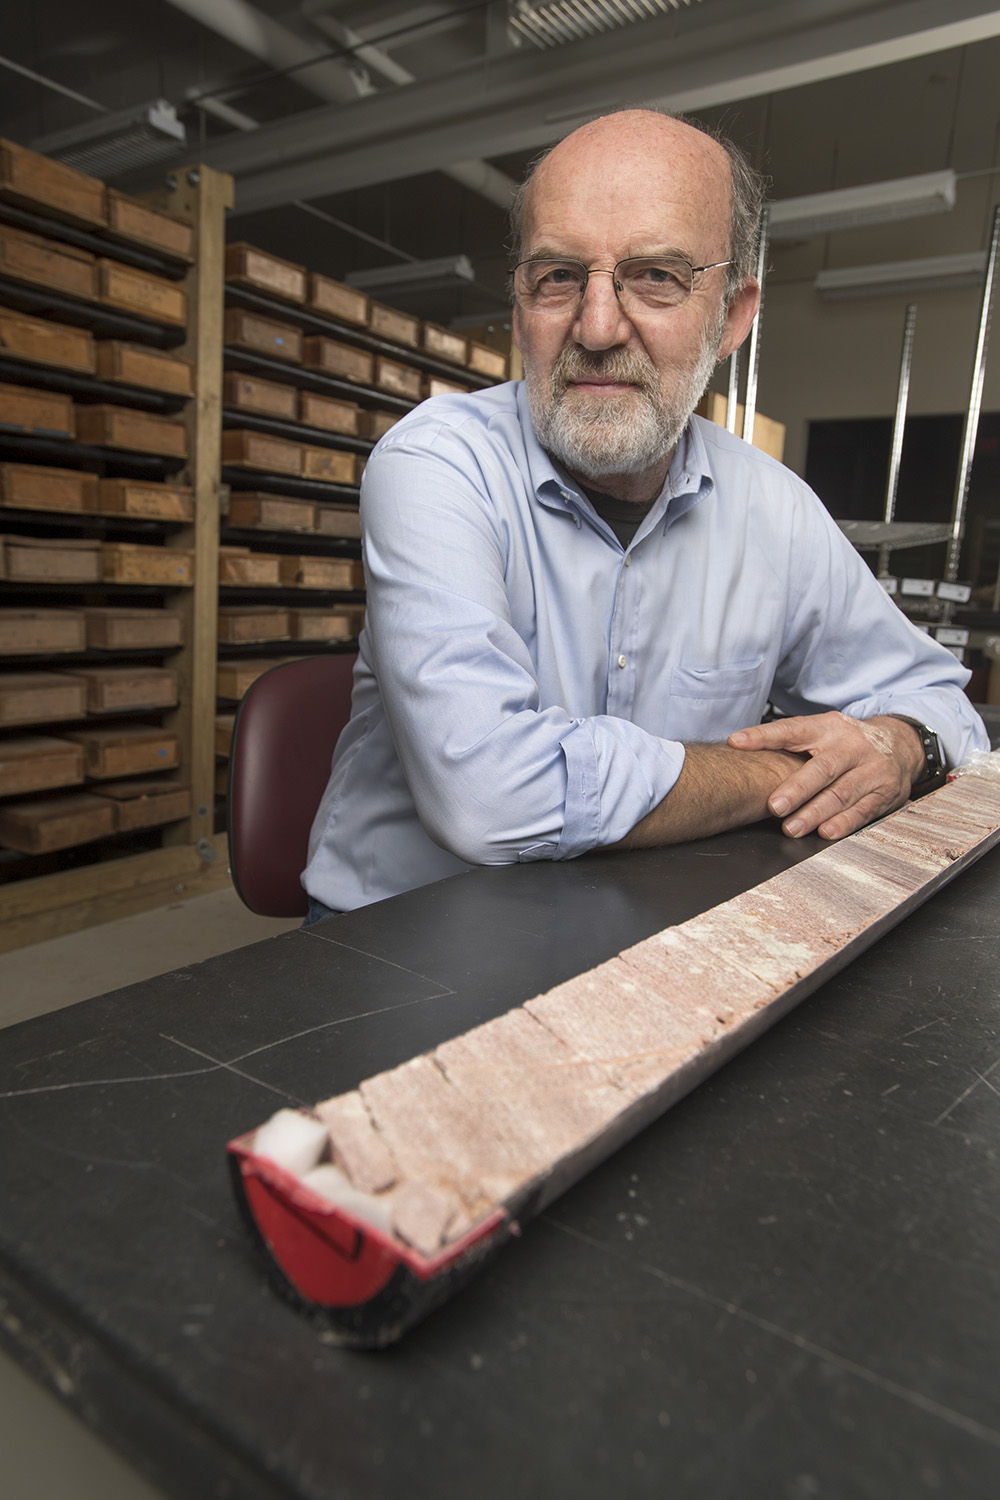 Rutgers University–New Brunswick Professor Dennis Kent with part of a 1,700-foot-long rock core through the Chinle Formation in Petrified Forest National Park in Arizona. The background includes boxed archives of cores from the Newark basin that were compared with the Arizona core. Photo Credit: Nick Romanenko/Rutgers University